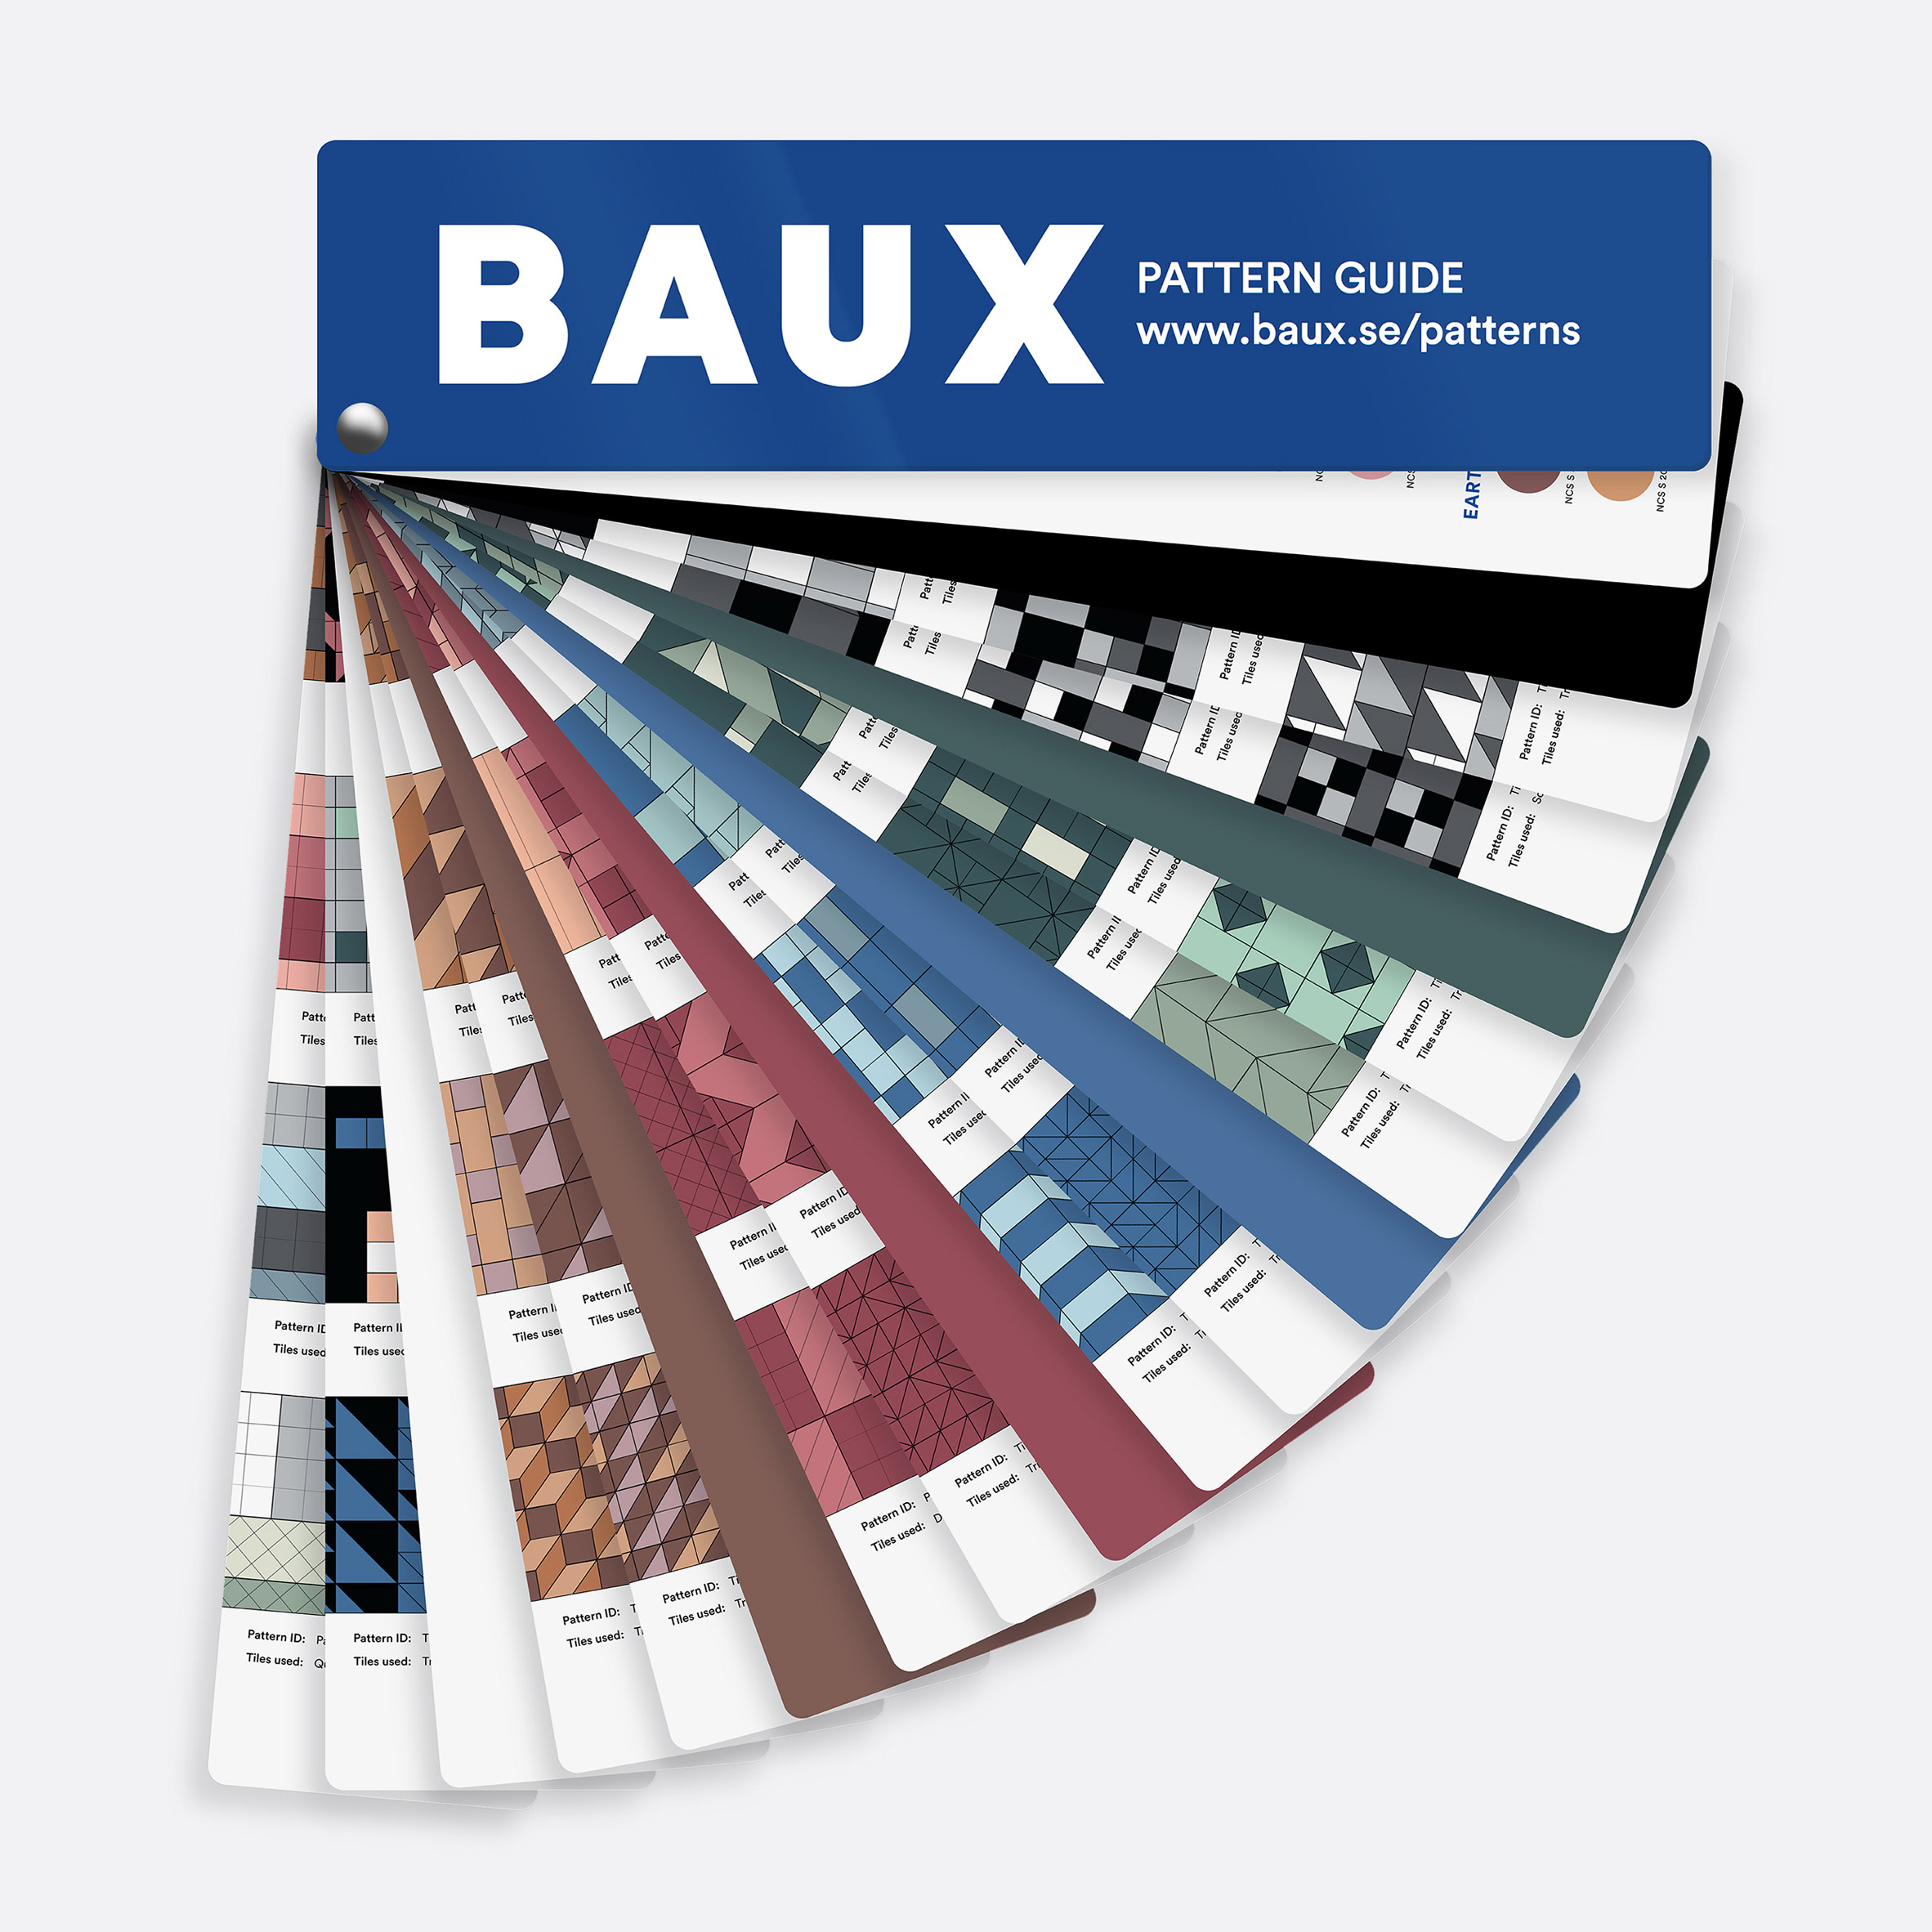 BAUX Patterns (2)